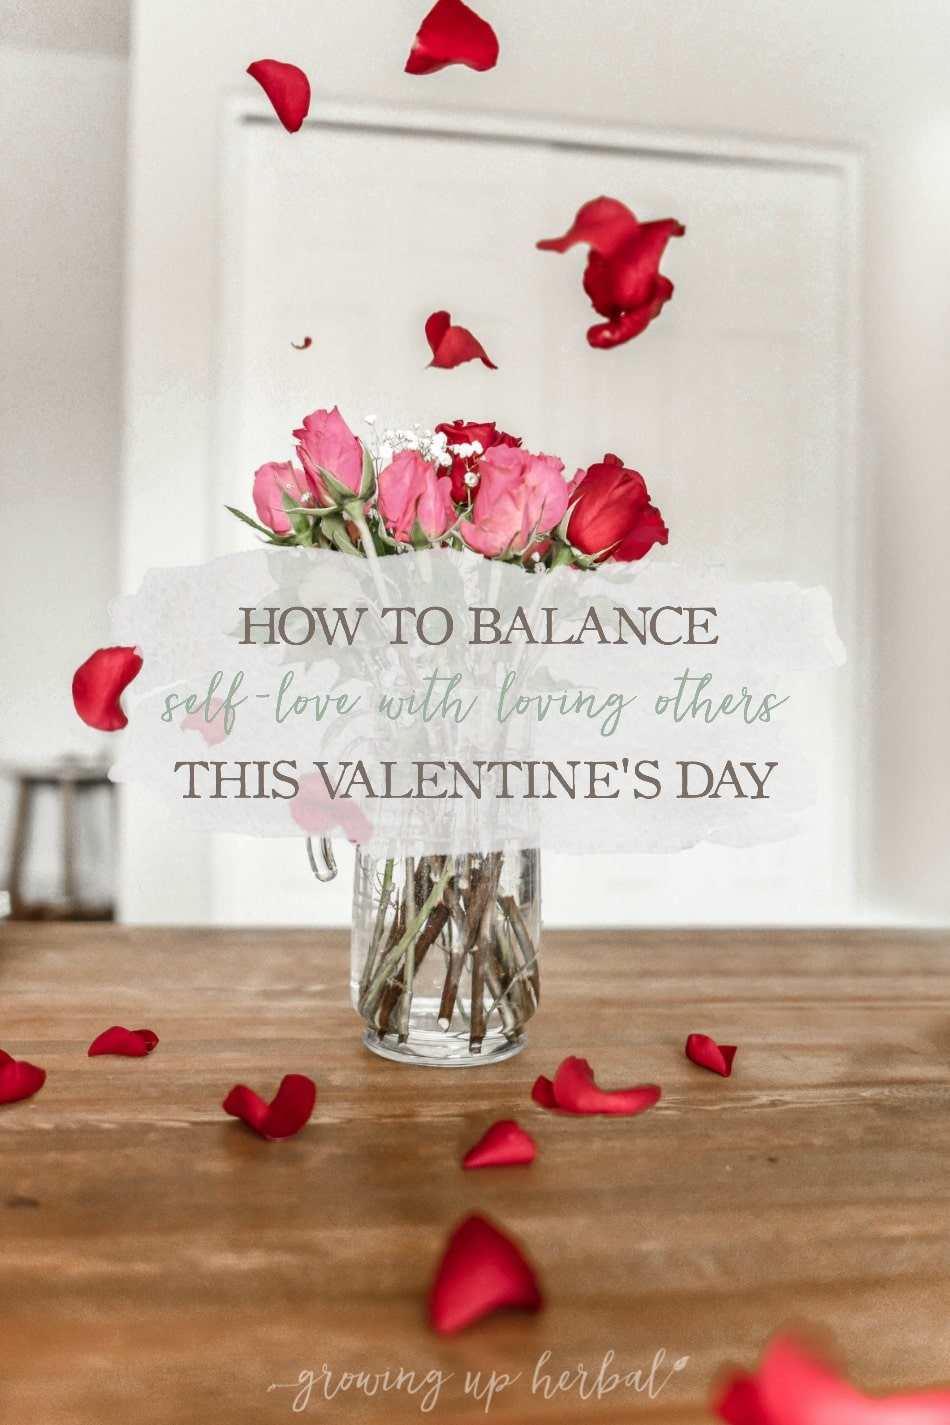 How To Balance Self-Love With Loving Others This Valentine's Day   Growing Up Herbal   If you find yourself in an imbalanced place when it comes to love, here are some natural therapies to help you balance self-love and loving others this year.